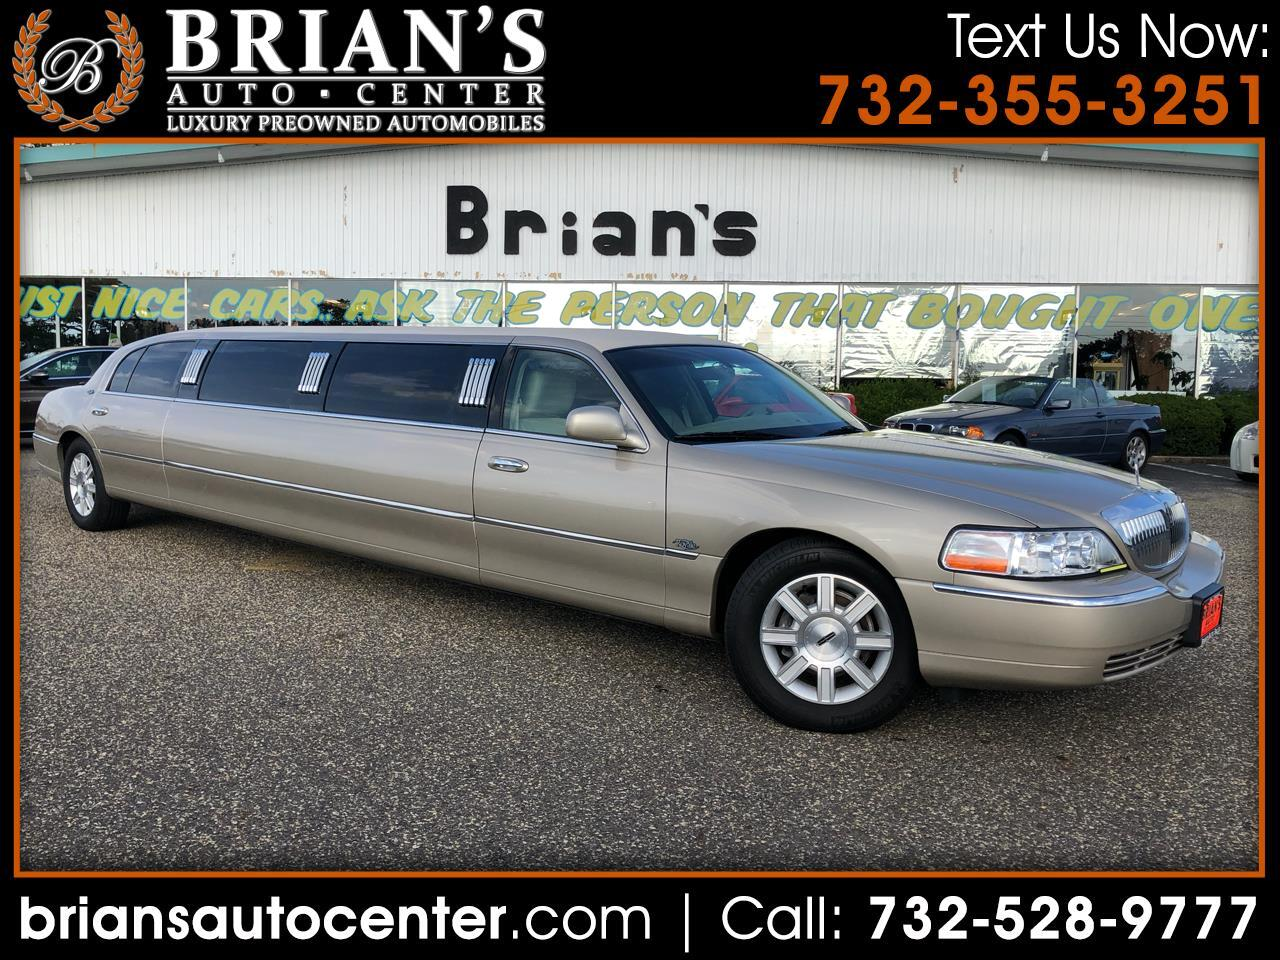 2011 Lincoln Town Car 4dr Sdn Executive L w/Livery Pkg